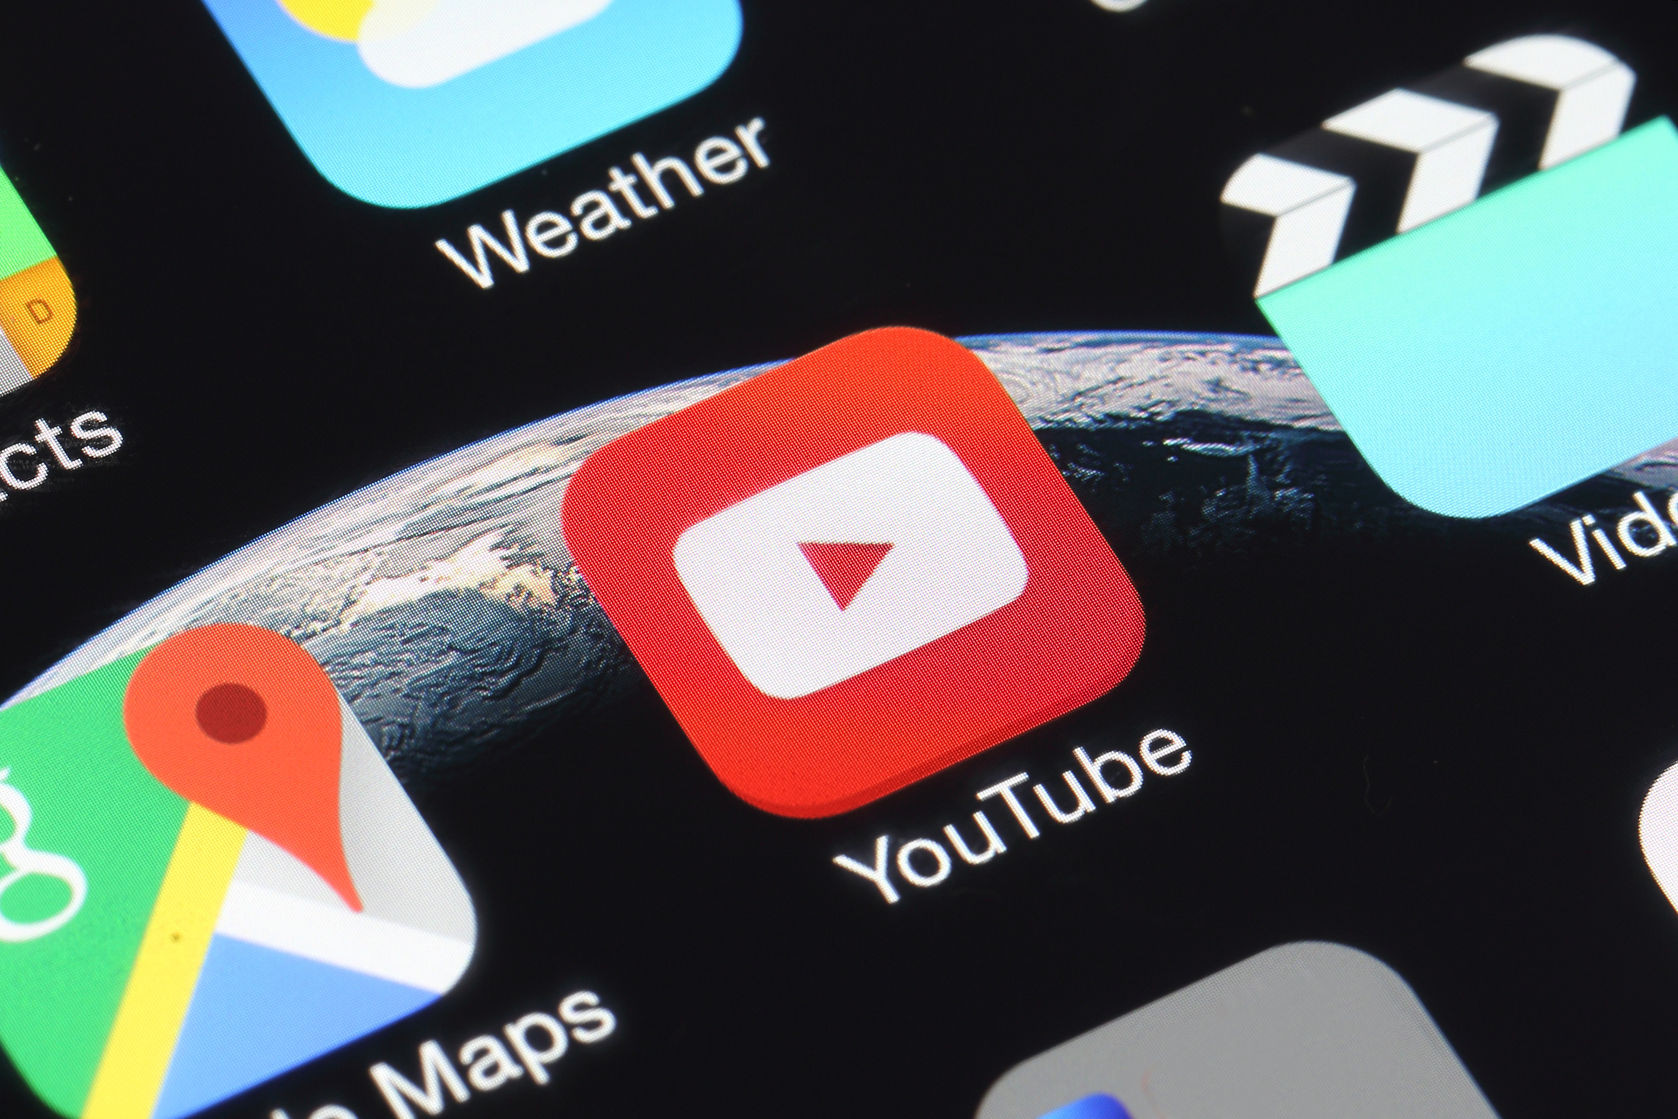 YouTube in-app messaging goes live in Canada first